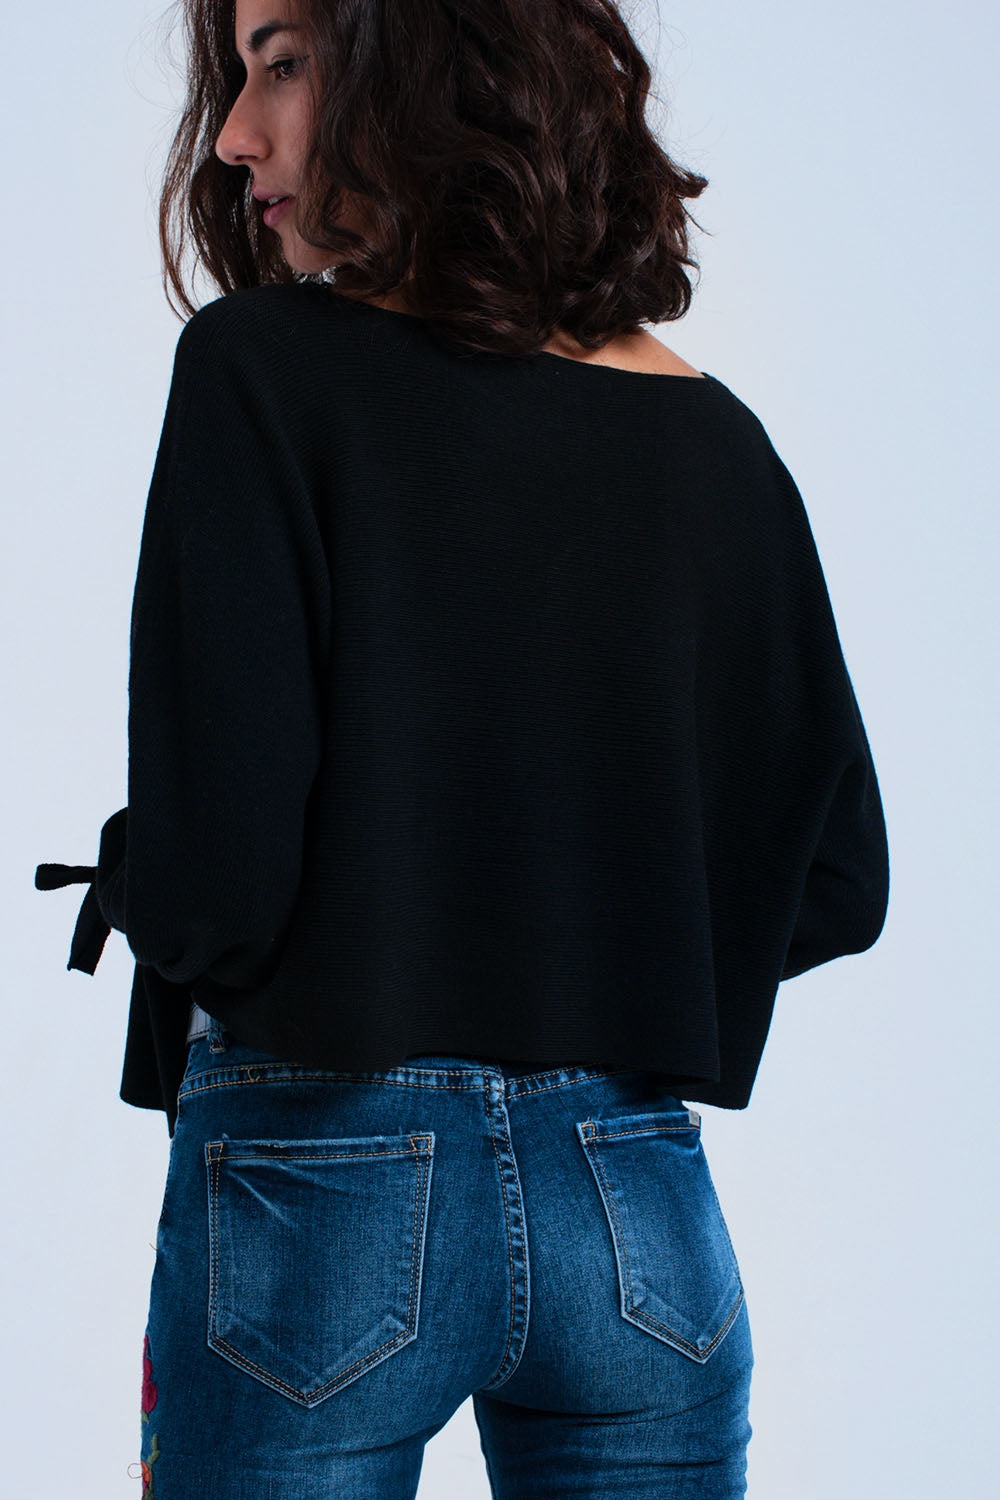 Black crop sweater with ribbons